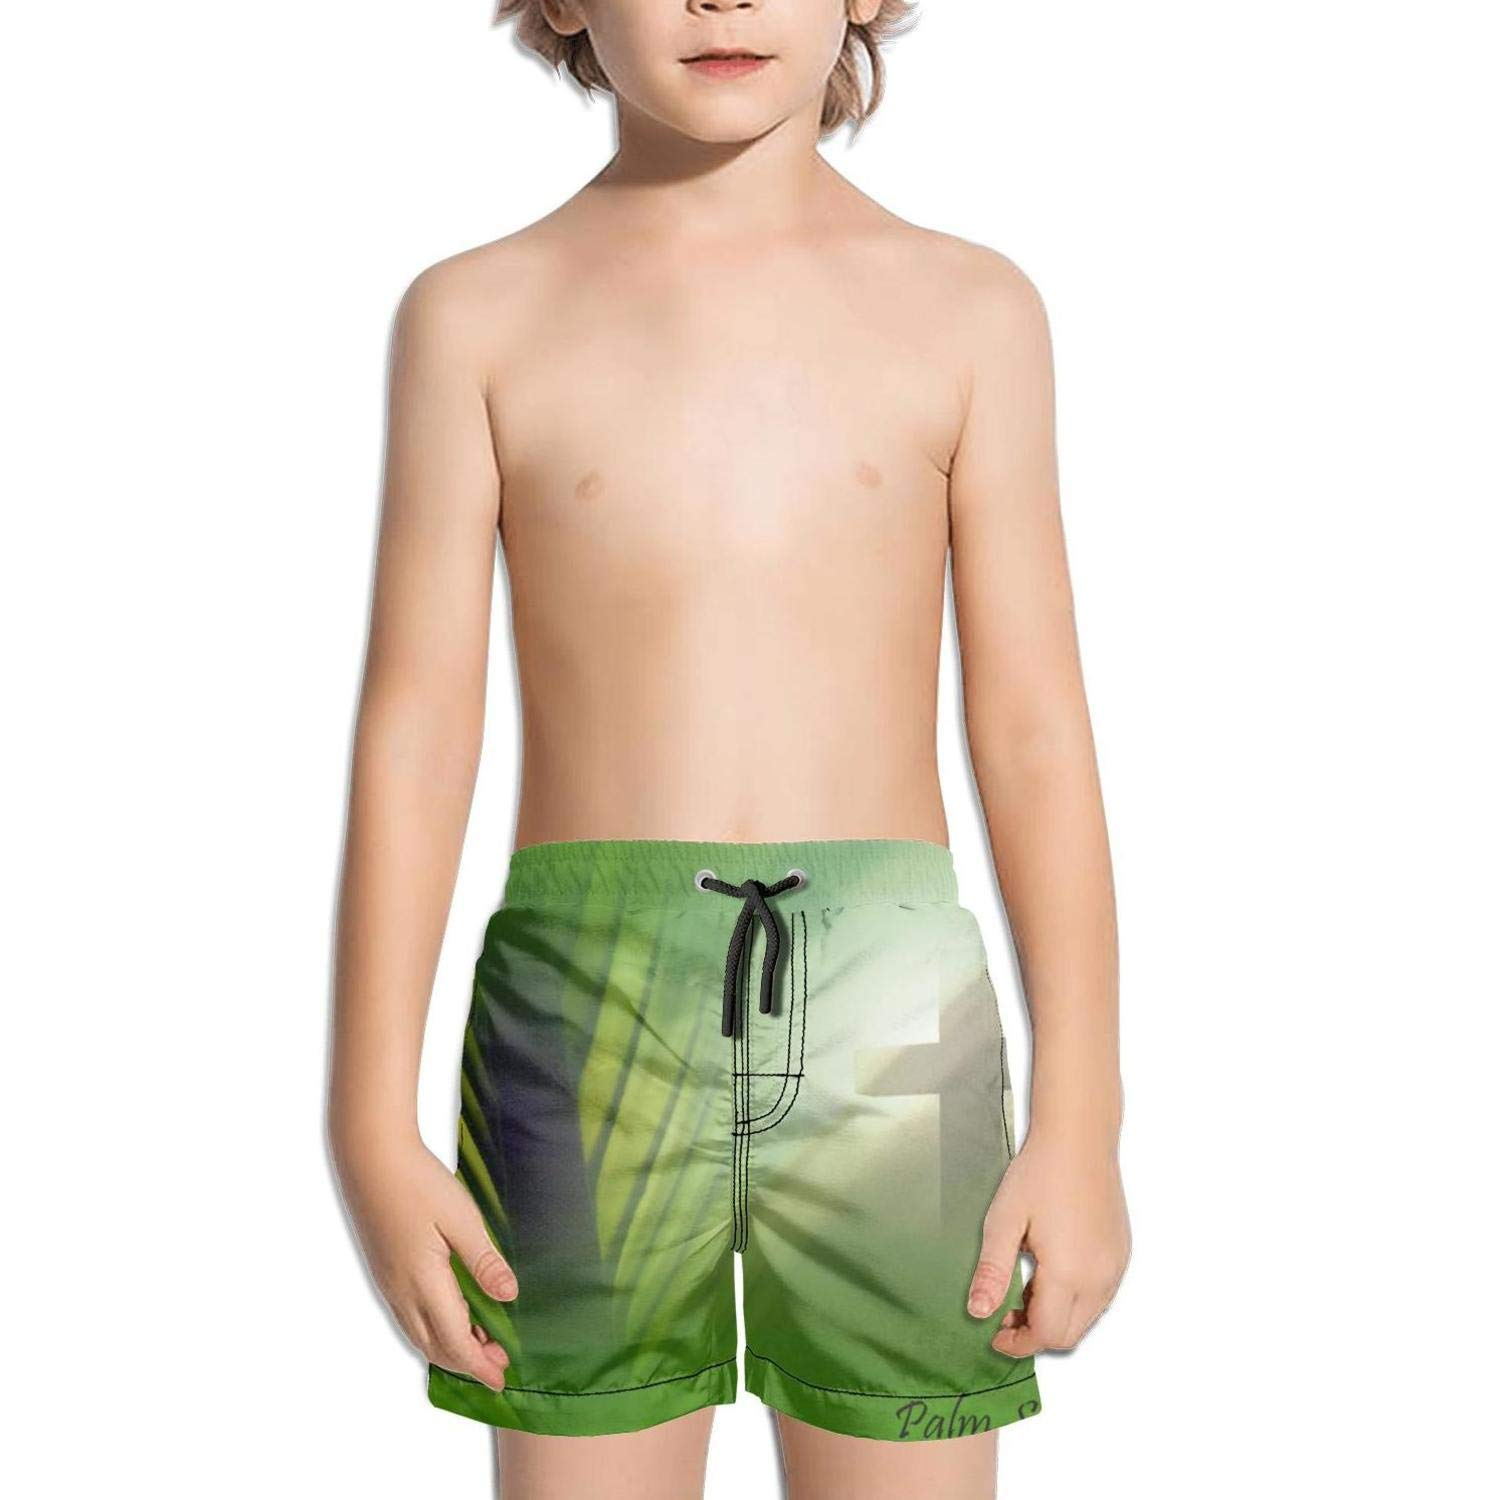 rtyil Palm Sunday Jerusalem Mural Kids Swimming Trunks Printed Swim Shorts for Boys Ruched Beach Shorts for Girls